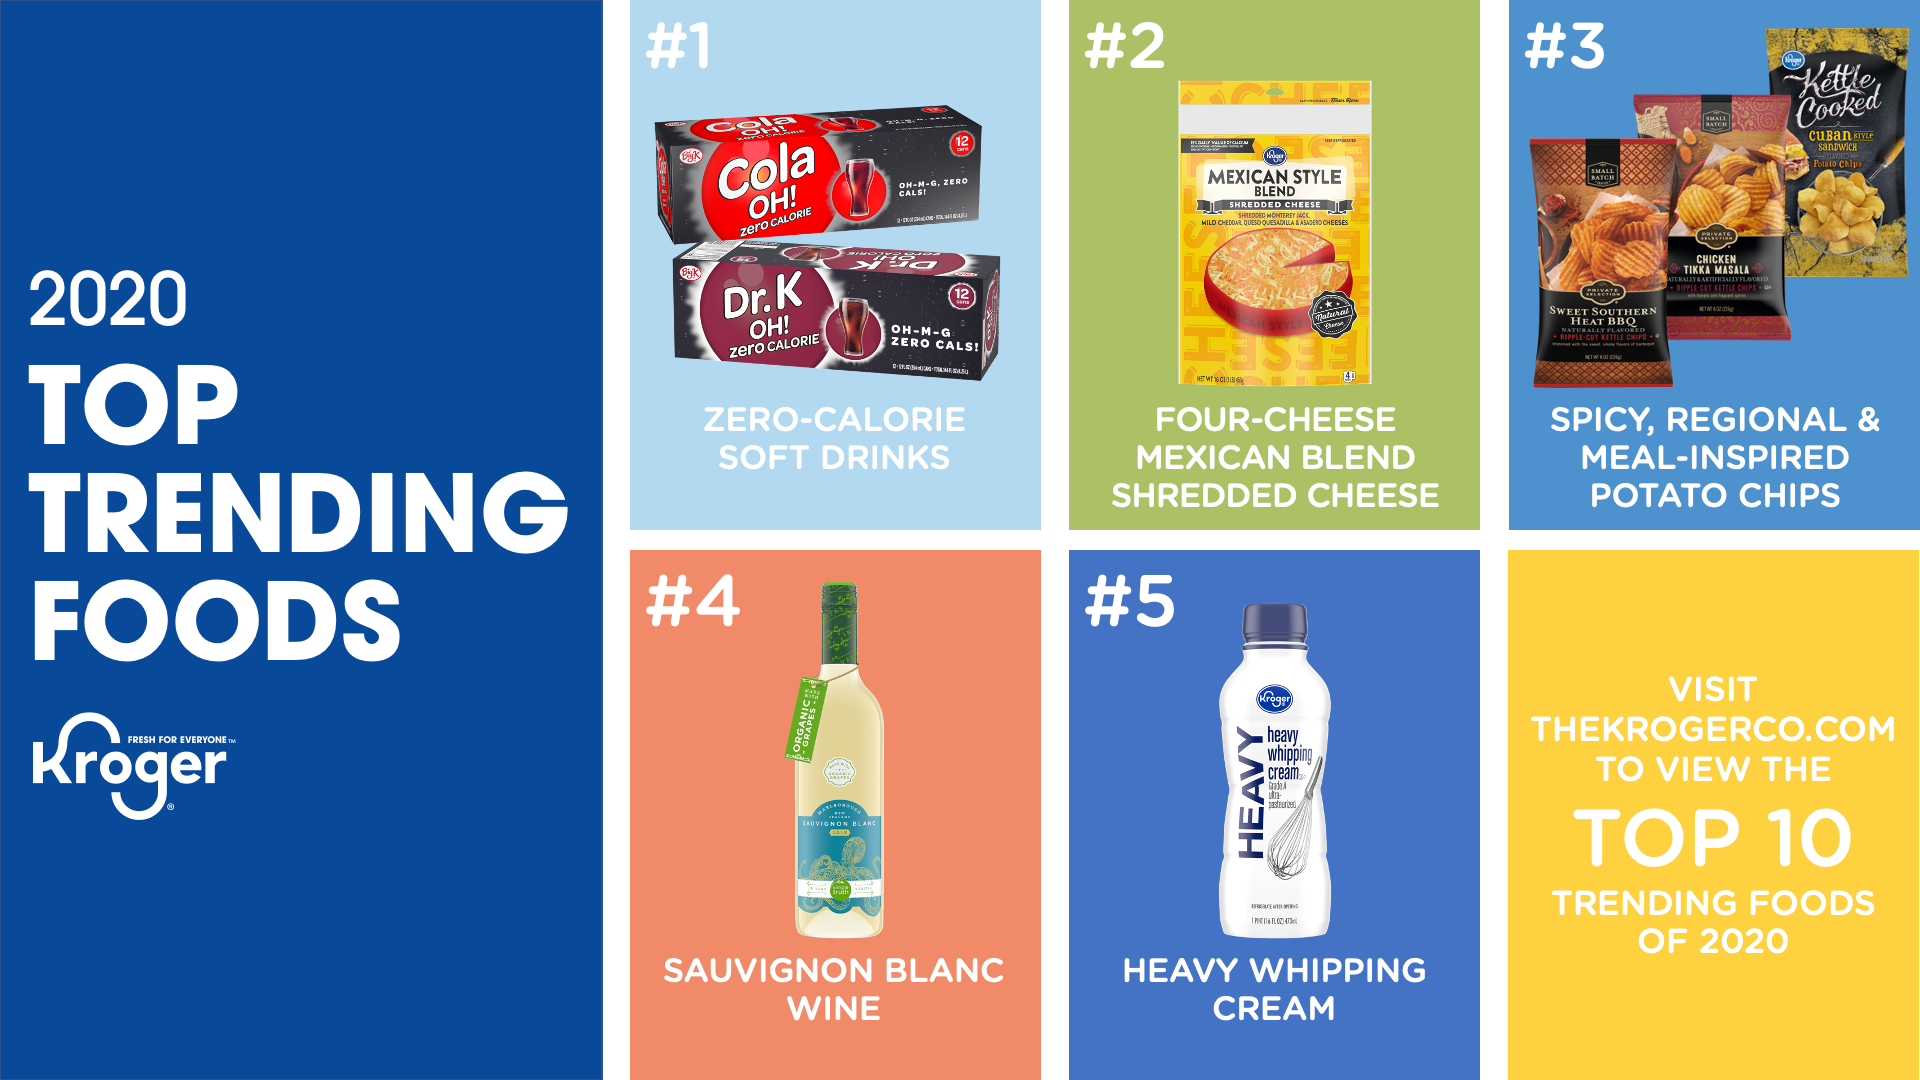 Kroger shares the top trending foods and beverages of 2020.